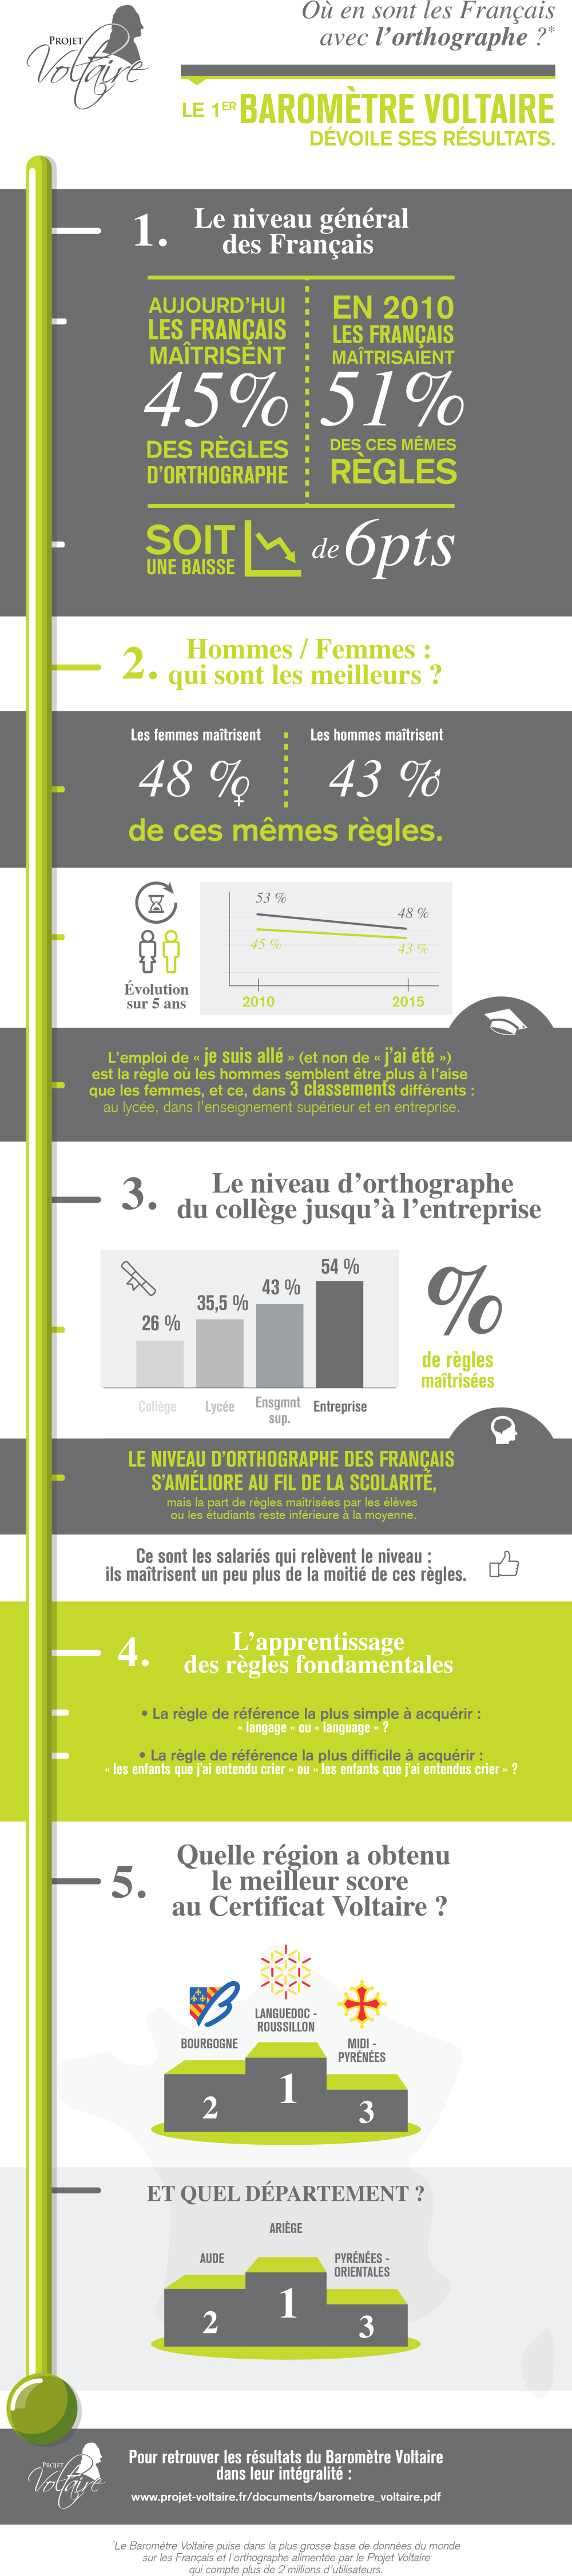 Infographie_projet_Voltaire